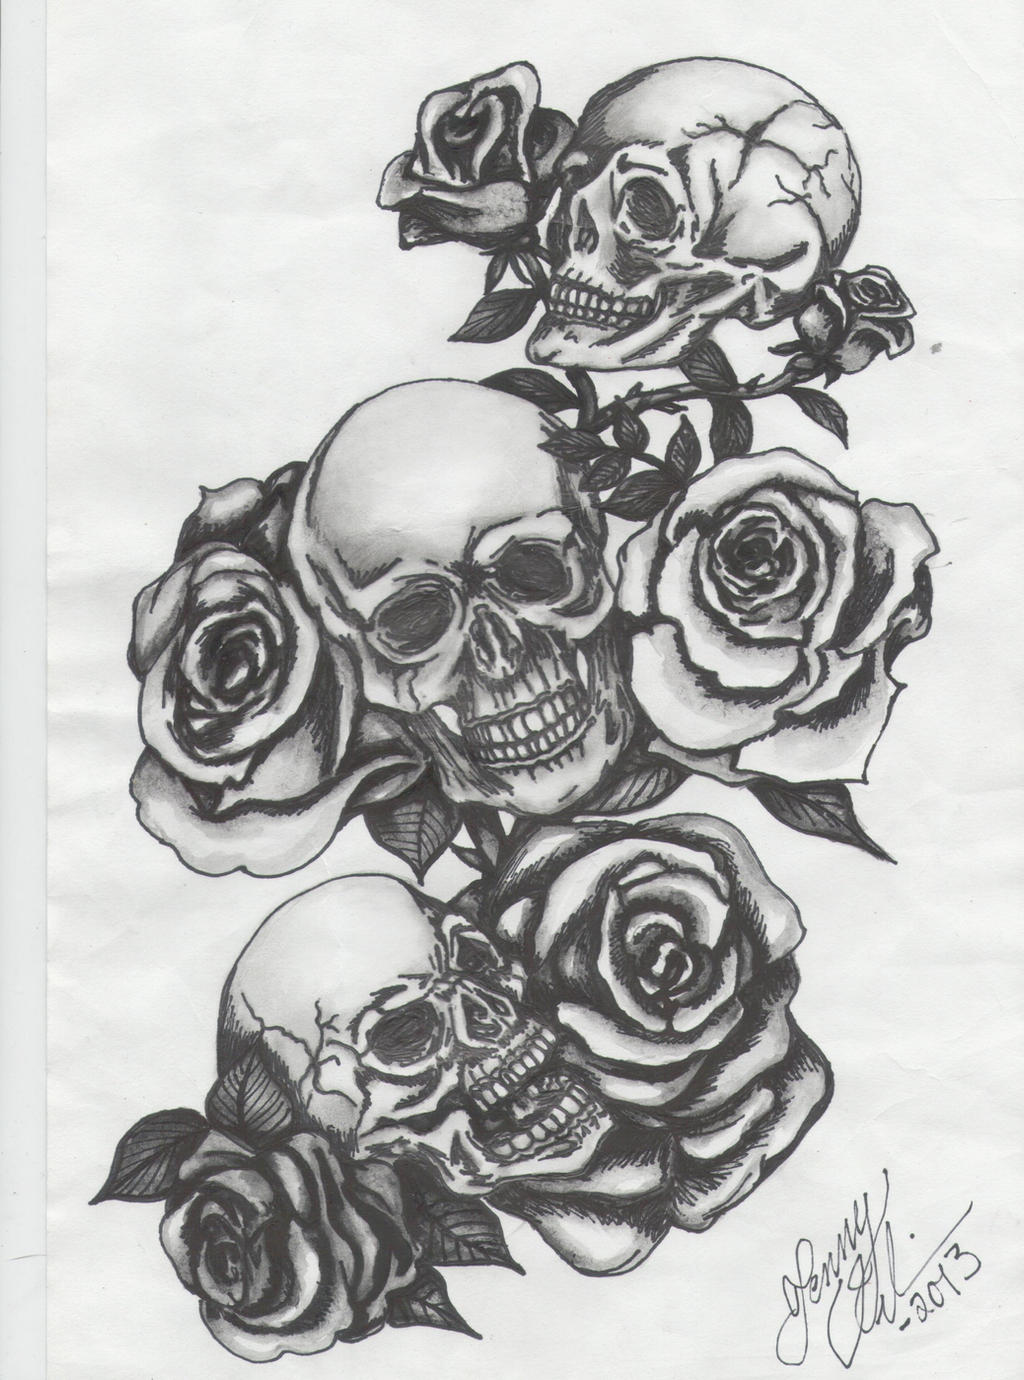 It's just a photo of Wild Rose And Skull Drawing